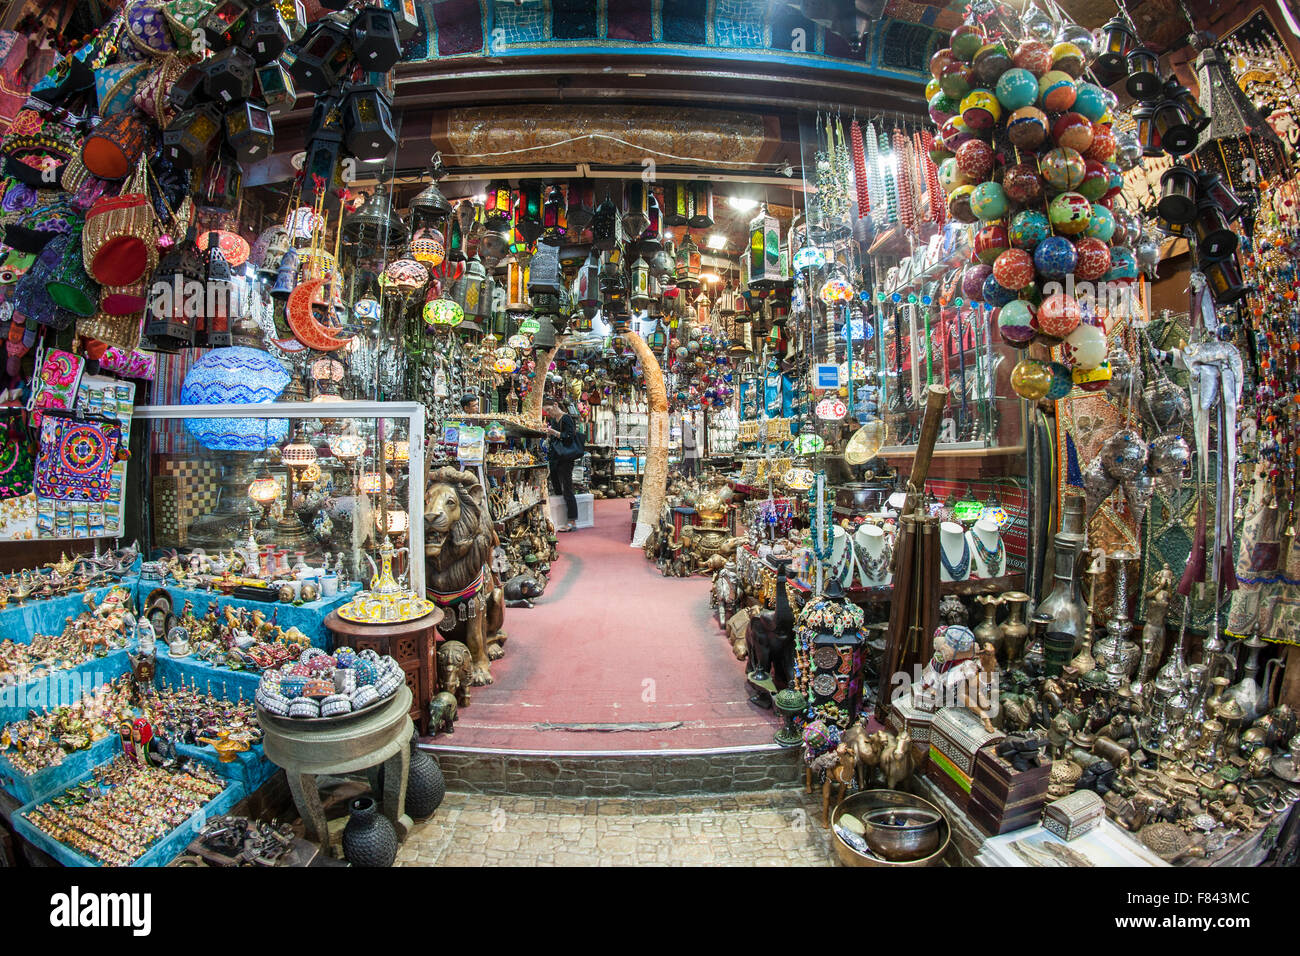 Curios for sale in the Mutrah souk in Muscat, the capital of the Sultanate of Oman. - Stock Image